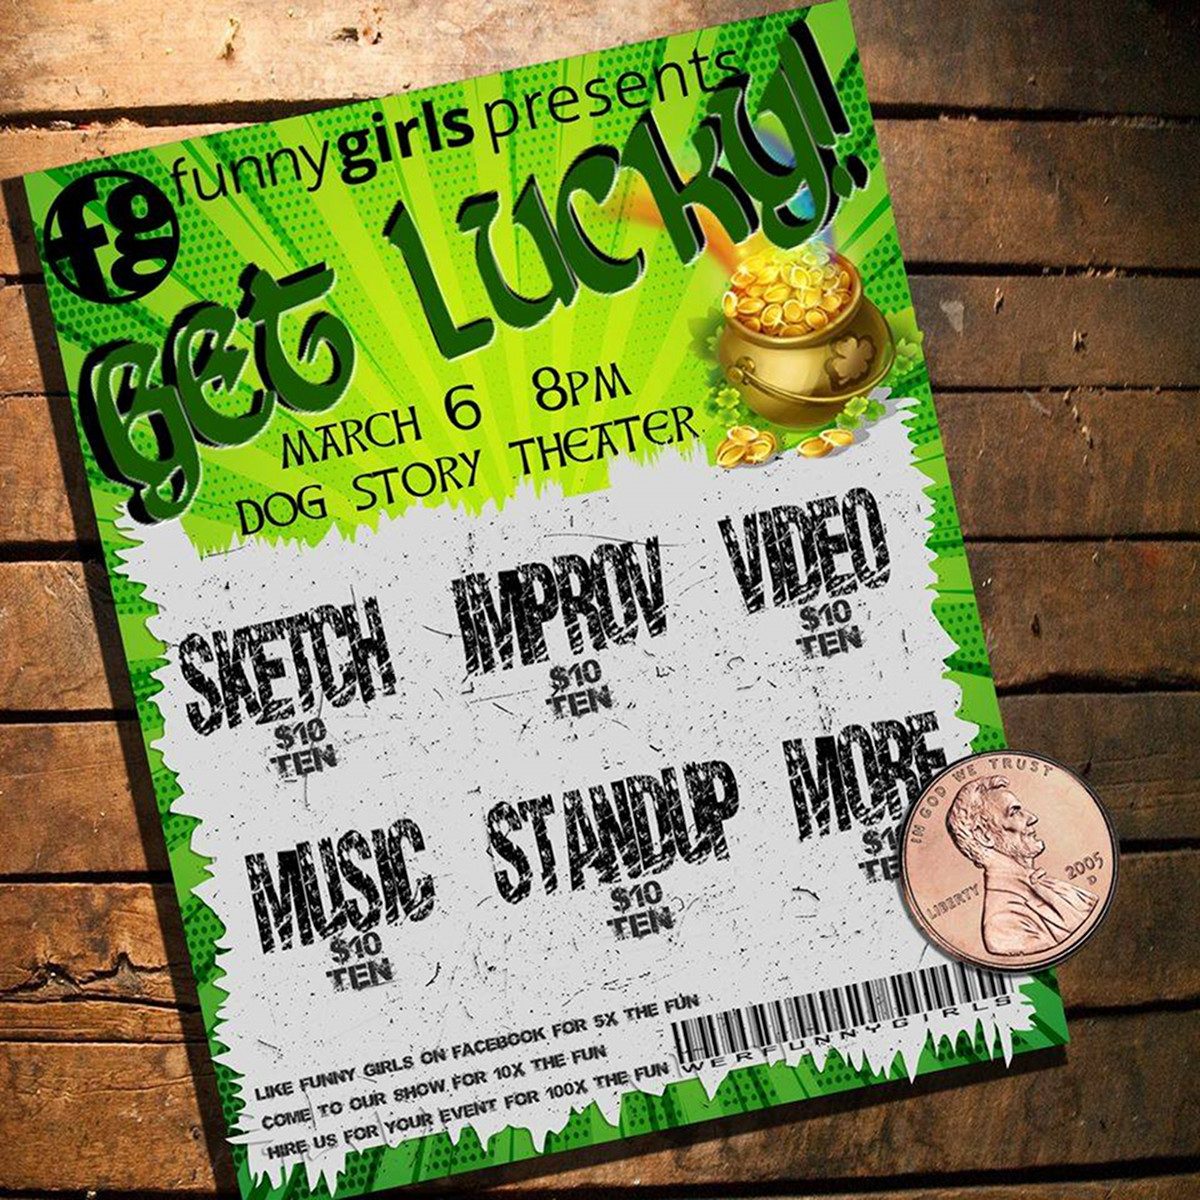 Funny Girls Get Lucky show poster